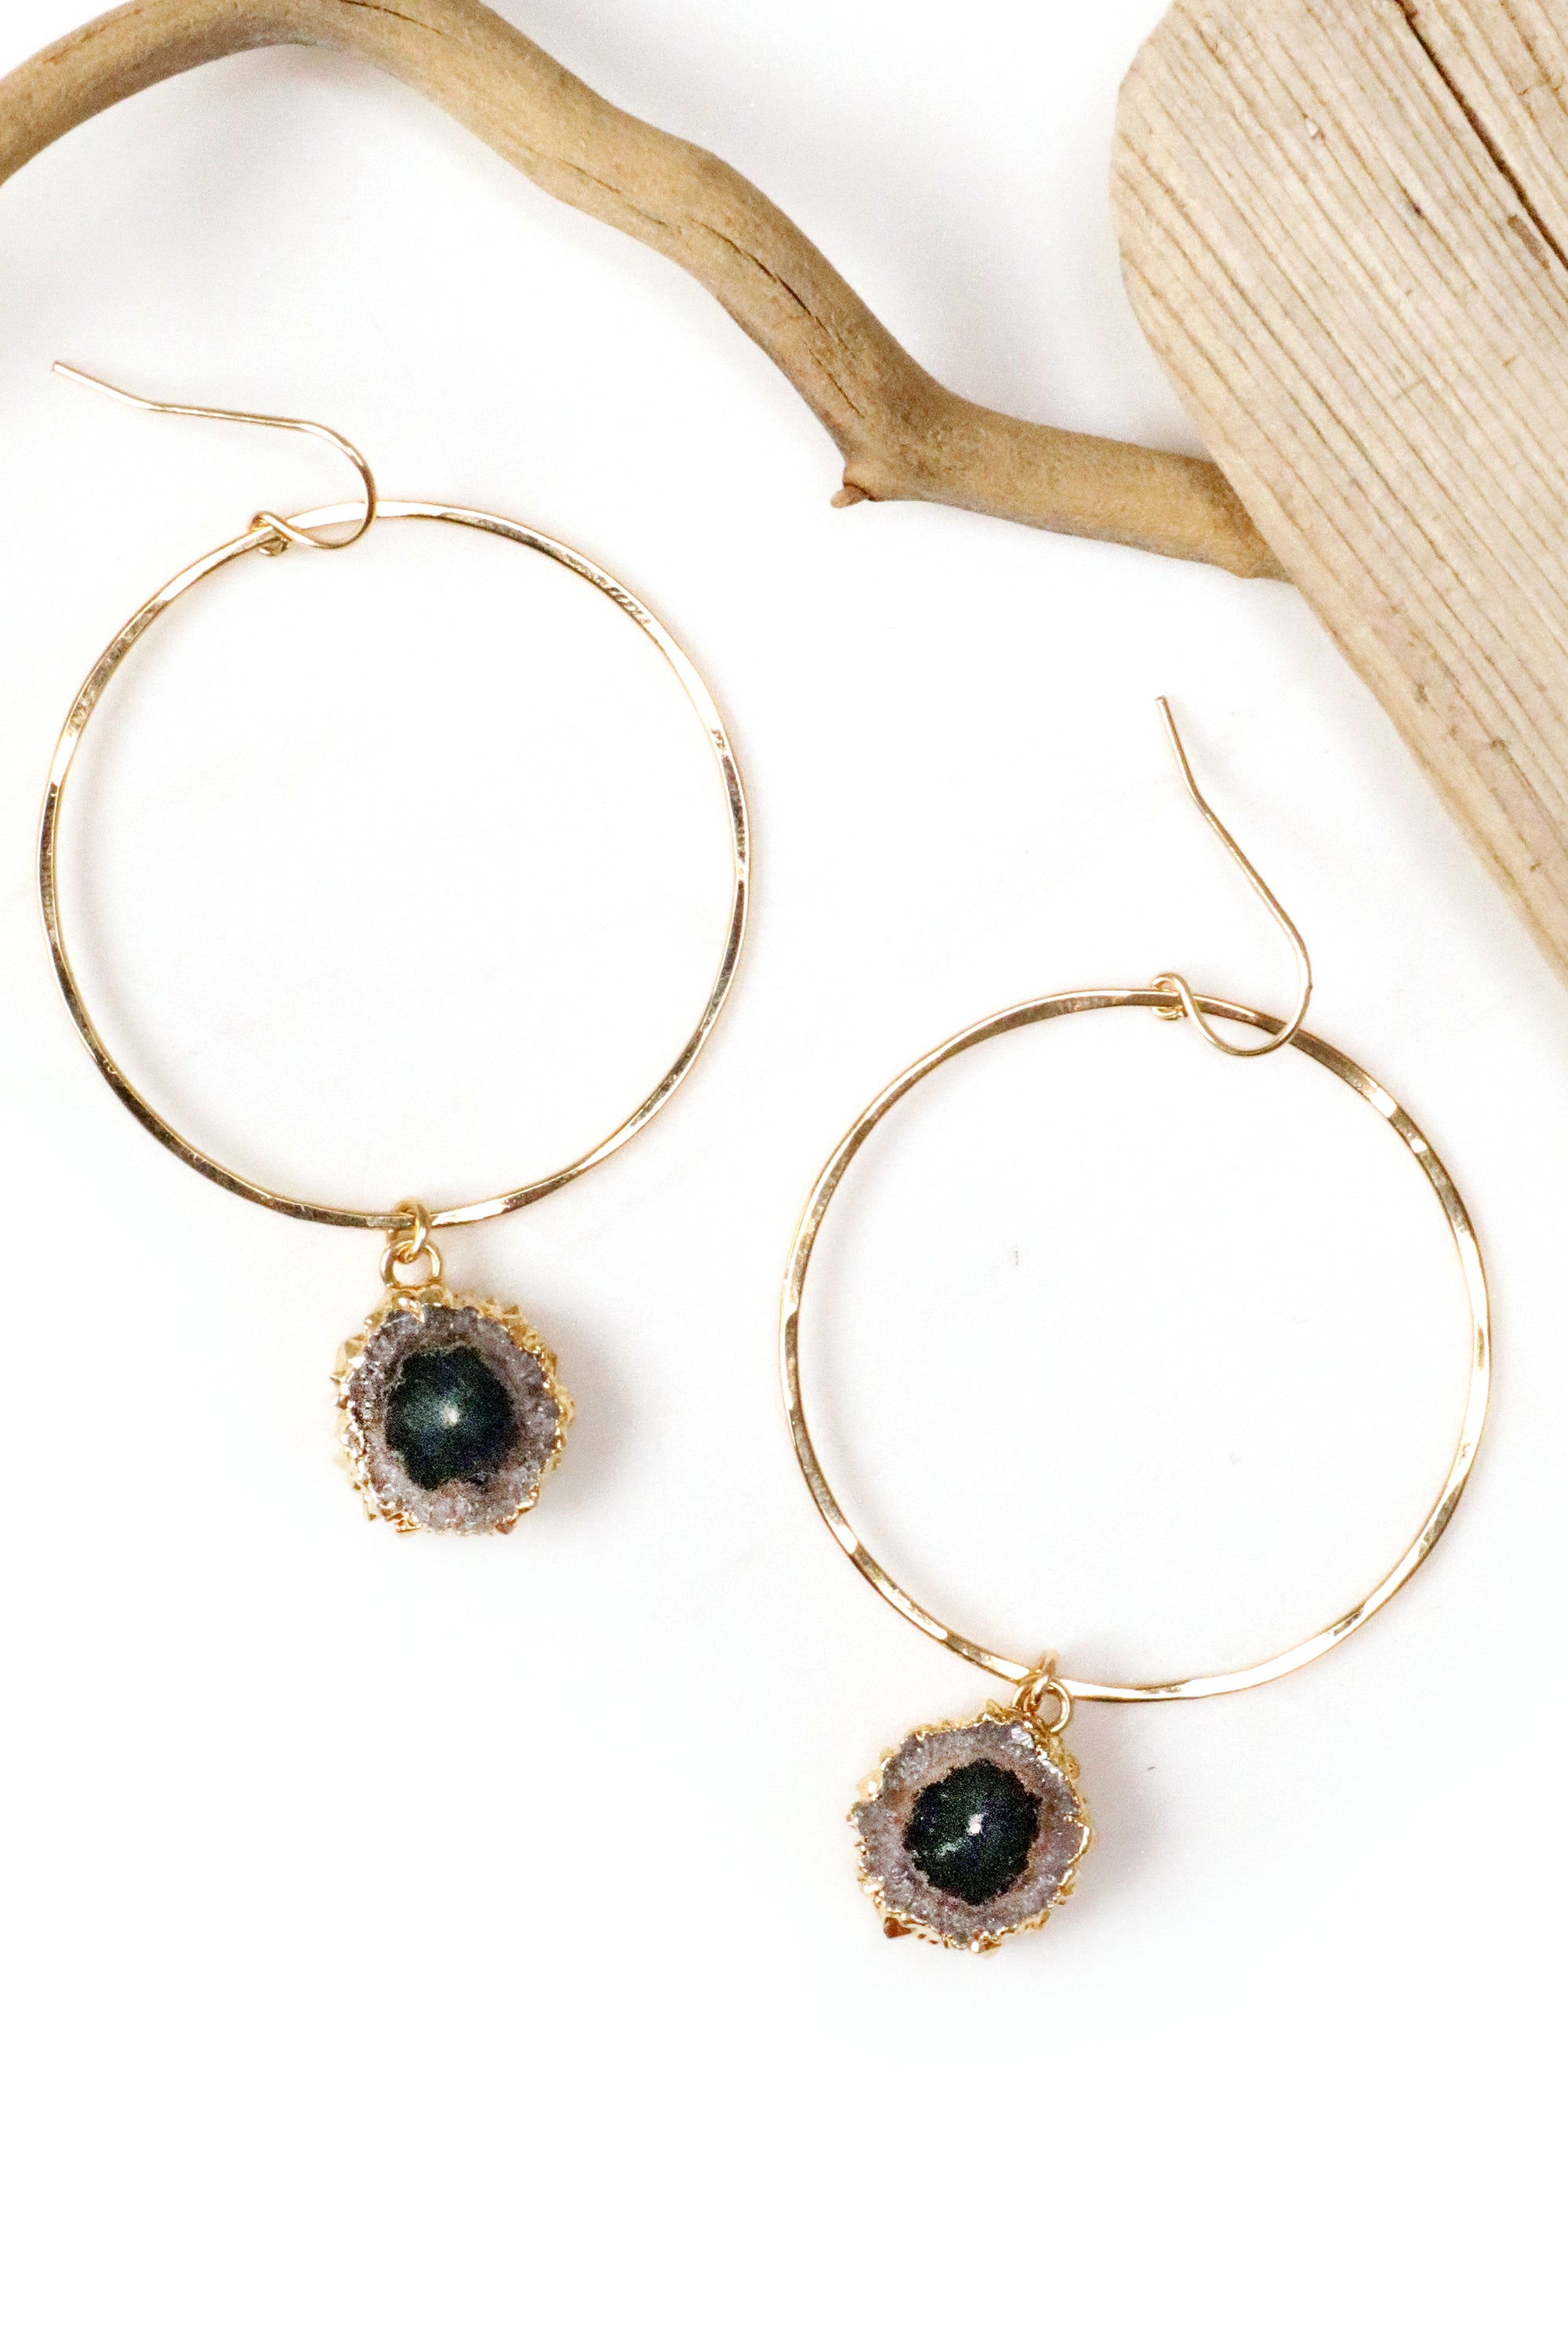 Stalactite Hammered Gold Hoop Earrings